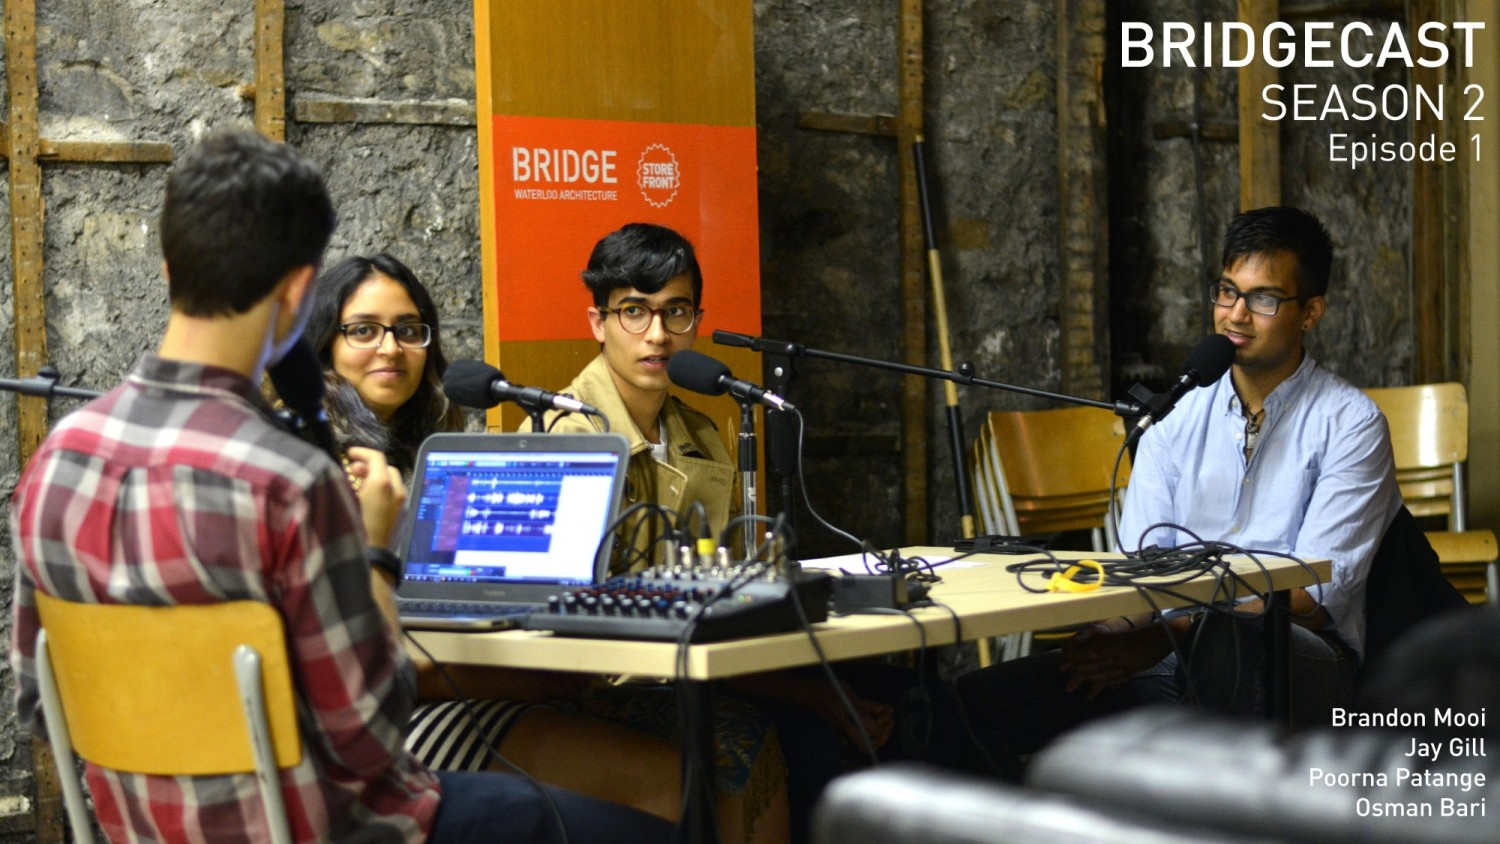 BRIDGECast Season 2 – Episode 1